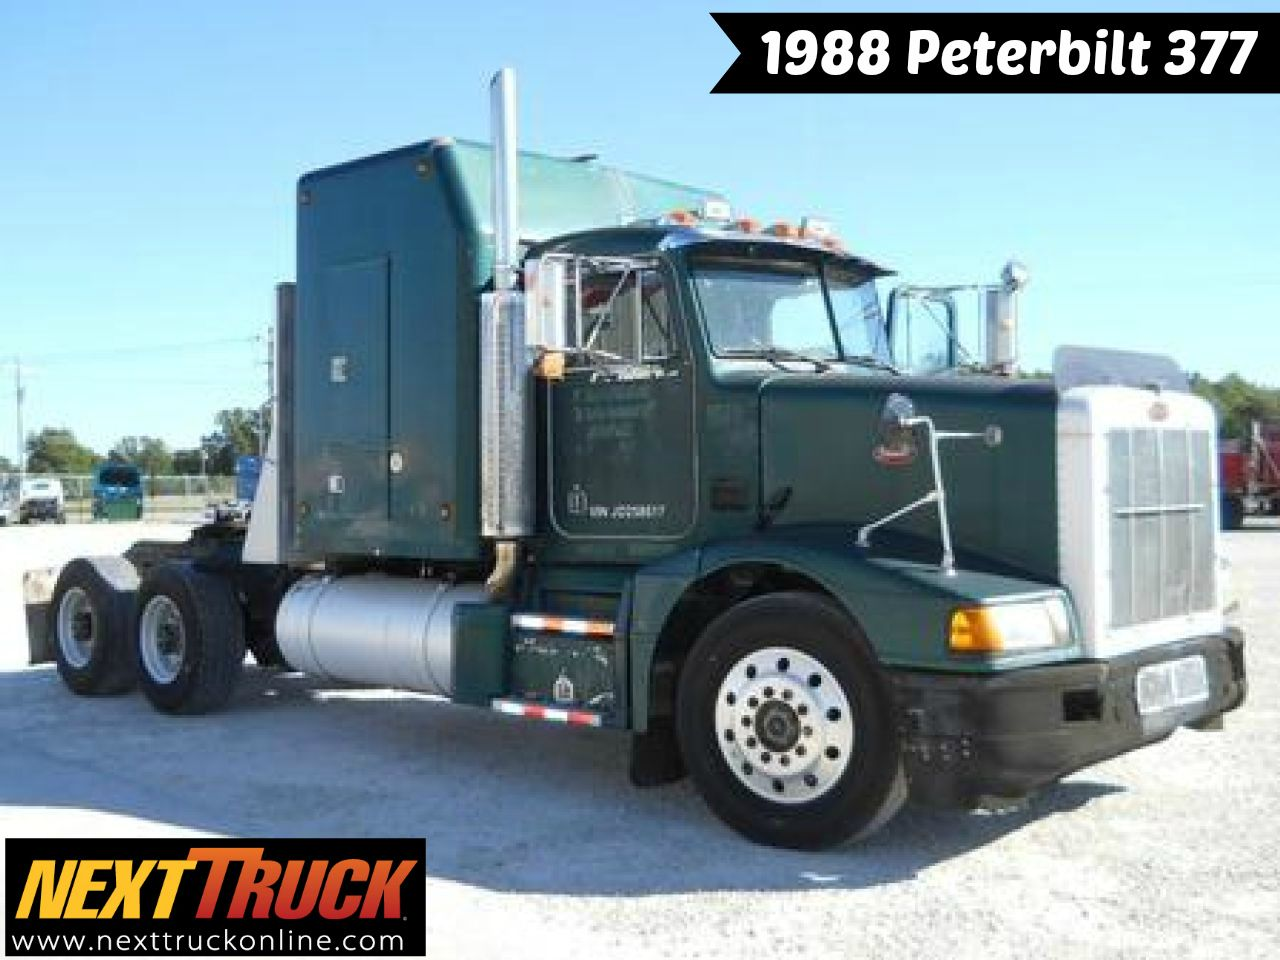 throwbackthursday check out this 1988 peterbilt 377 view more peterbilt trucks at